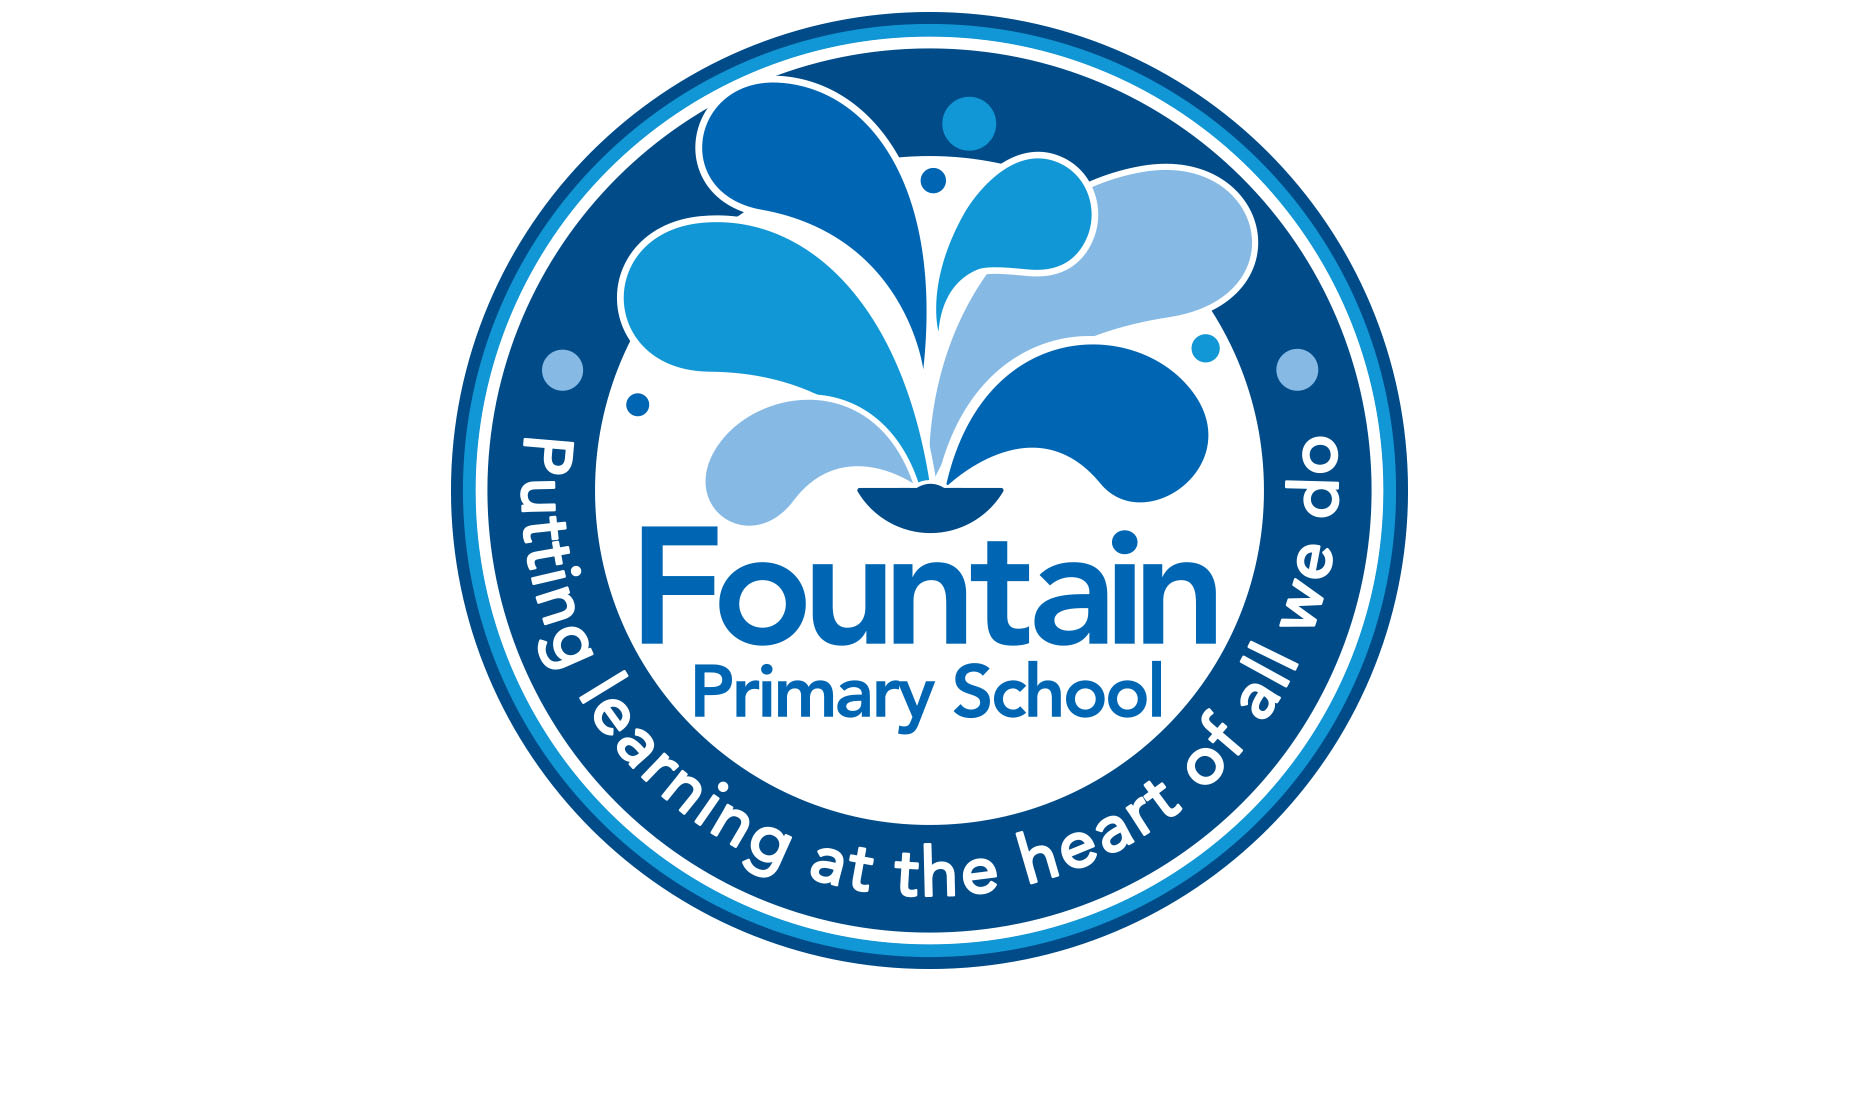 Fountain Logo Design